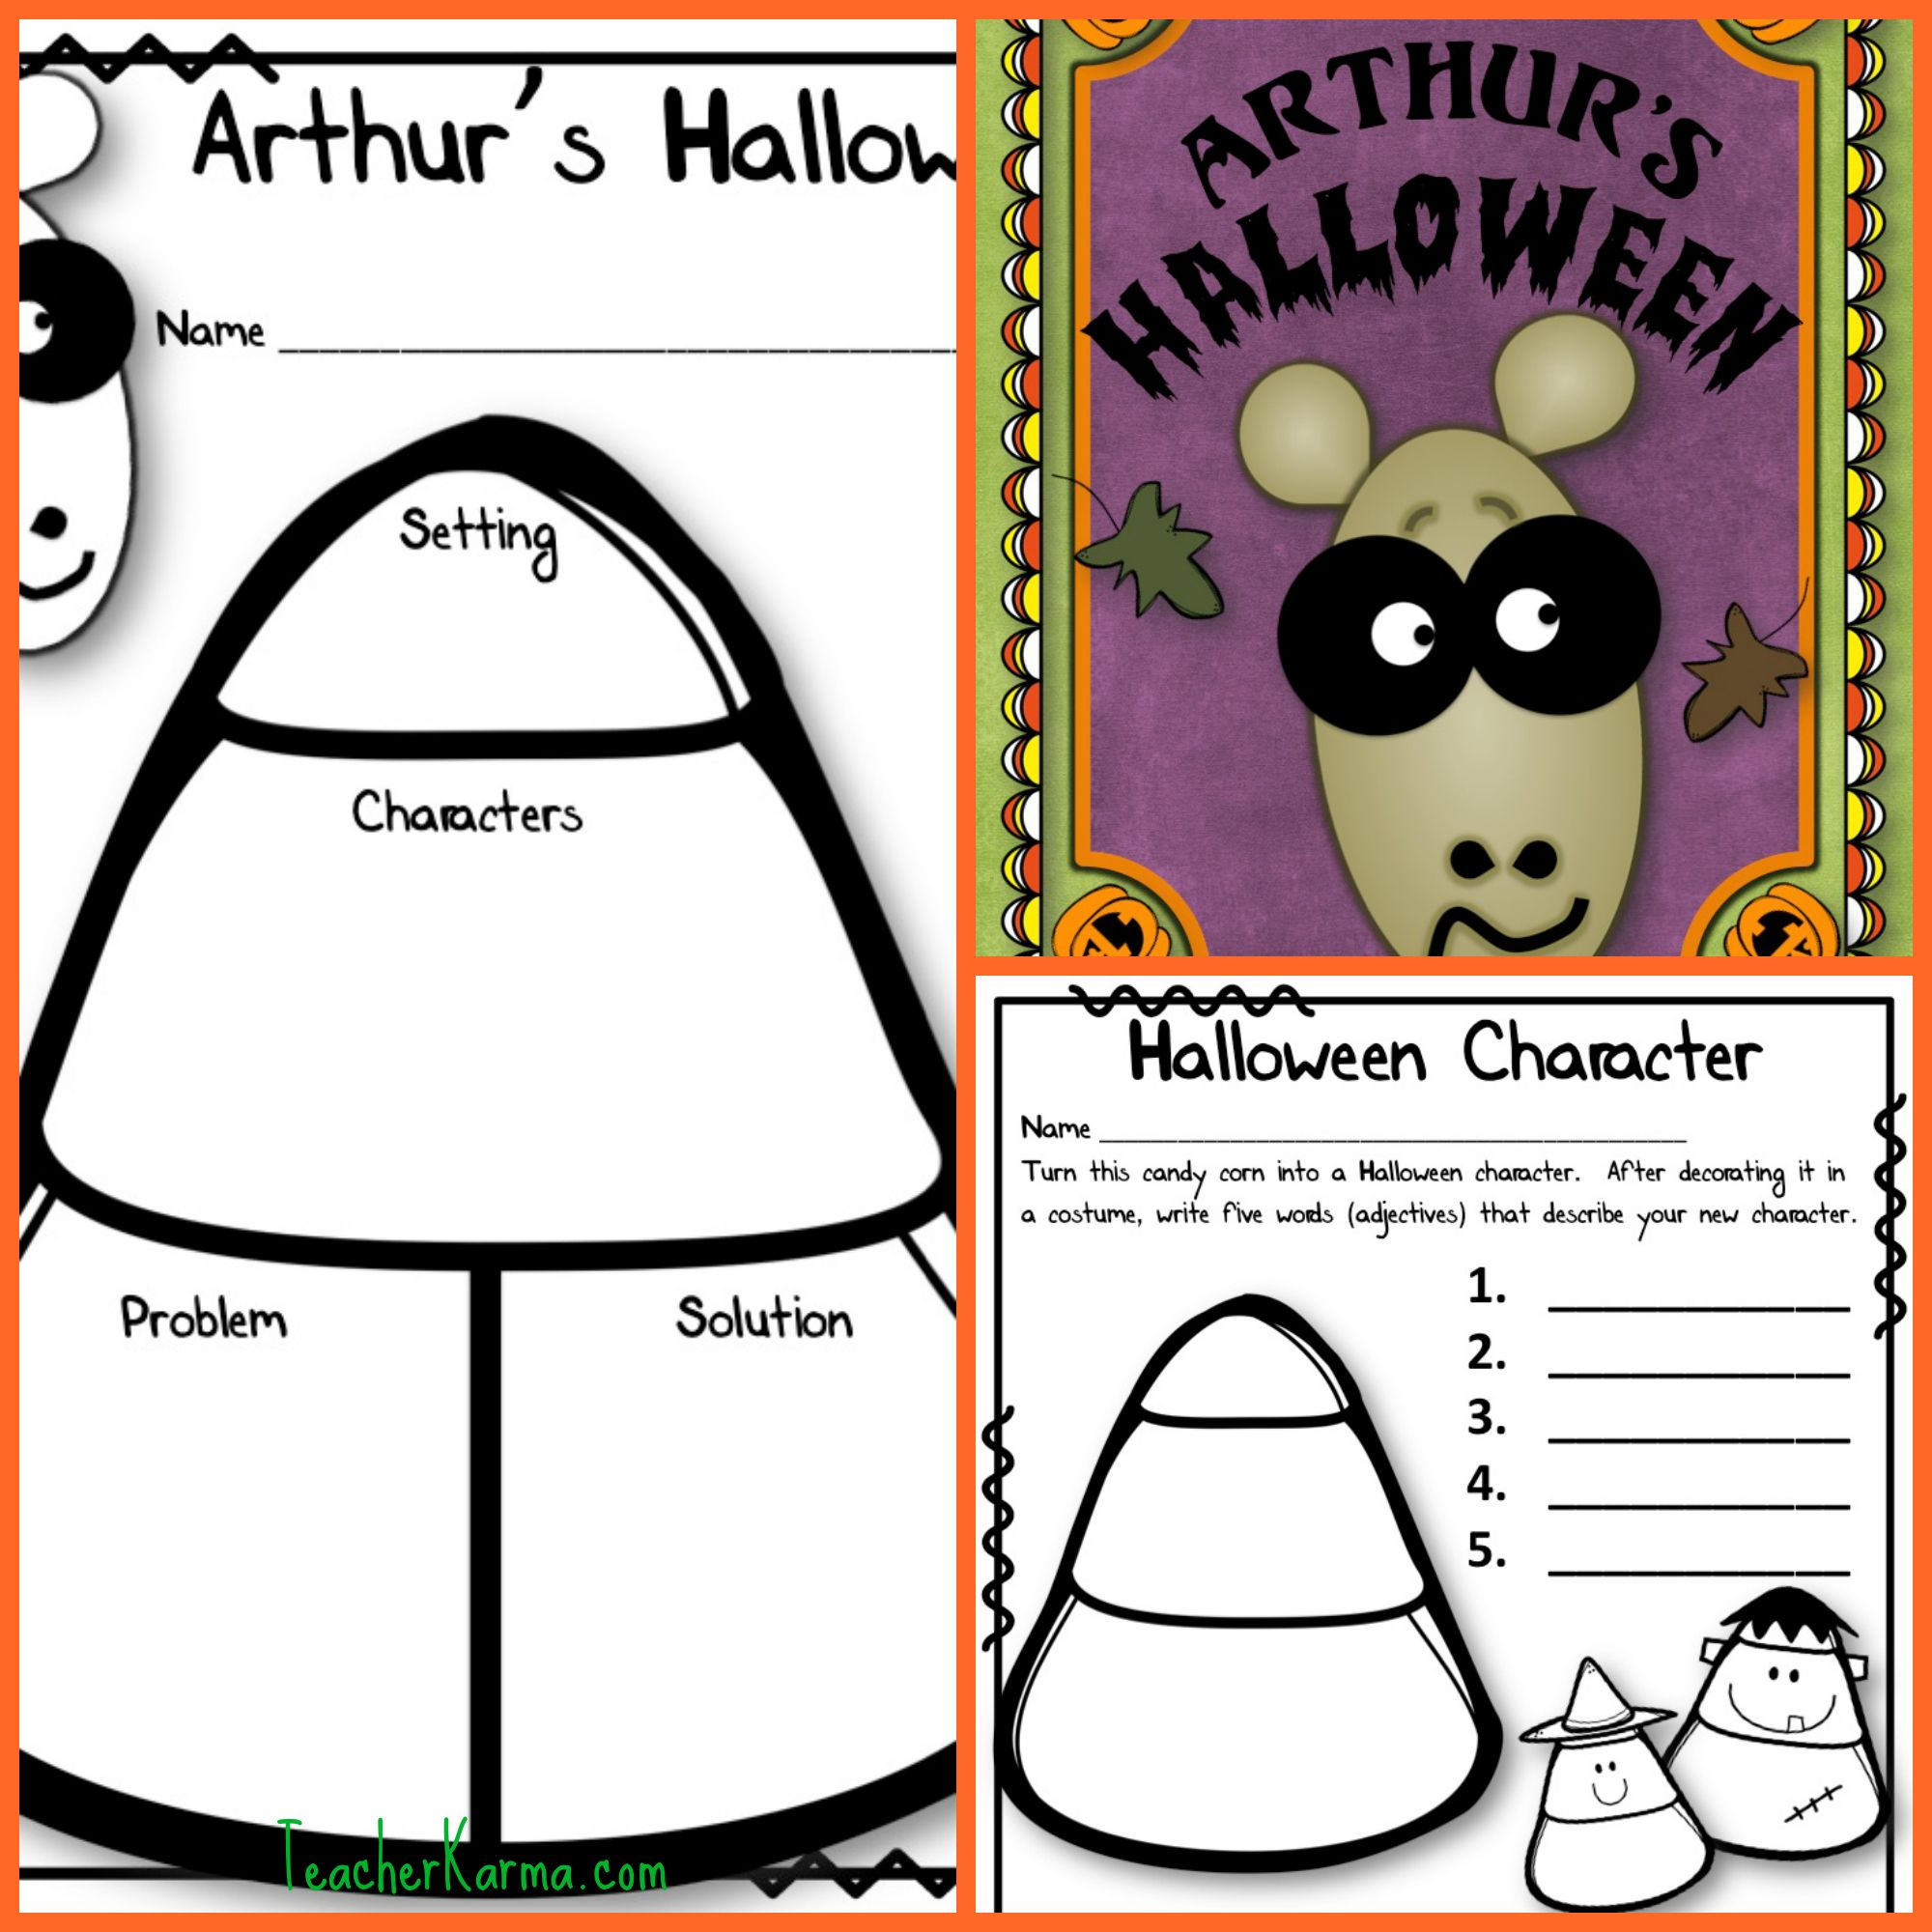 Arthur S Halloween Literacy Kit Story Elements Reading Comprehension